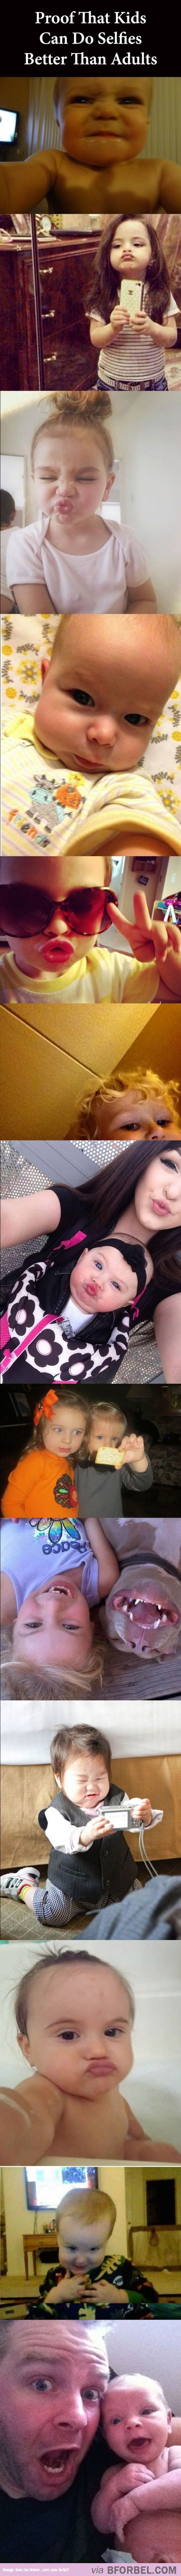 Omg these are adorable! The only time duck lips looks cute as a selfie..when ur a child! !